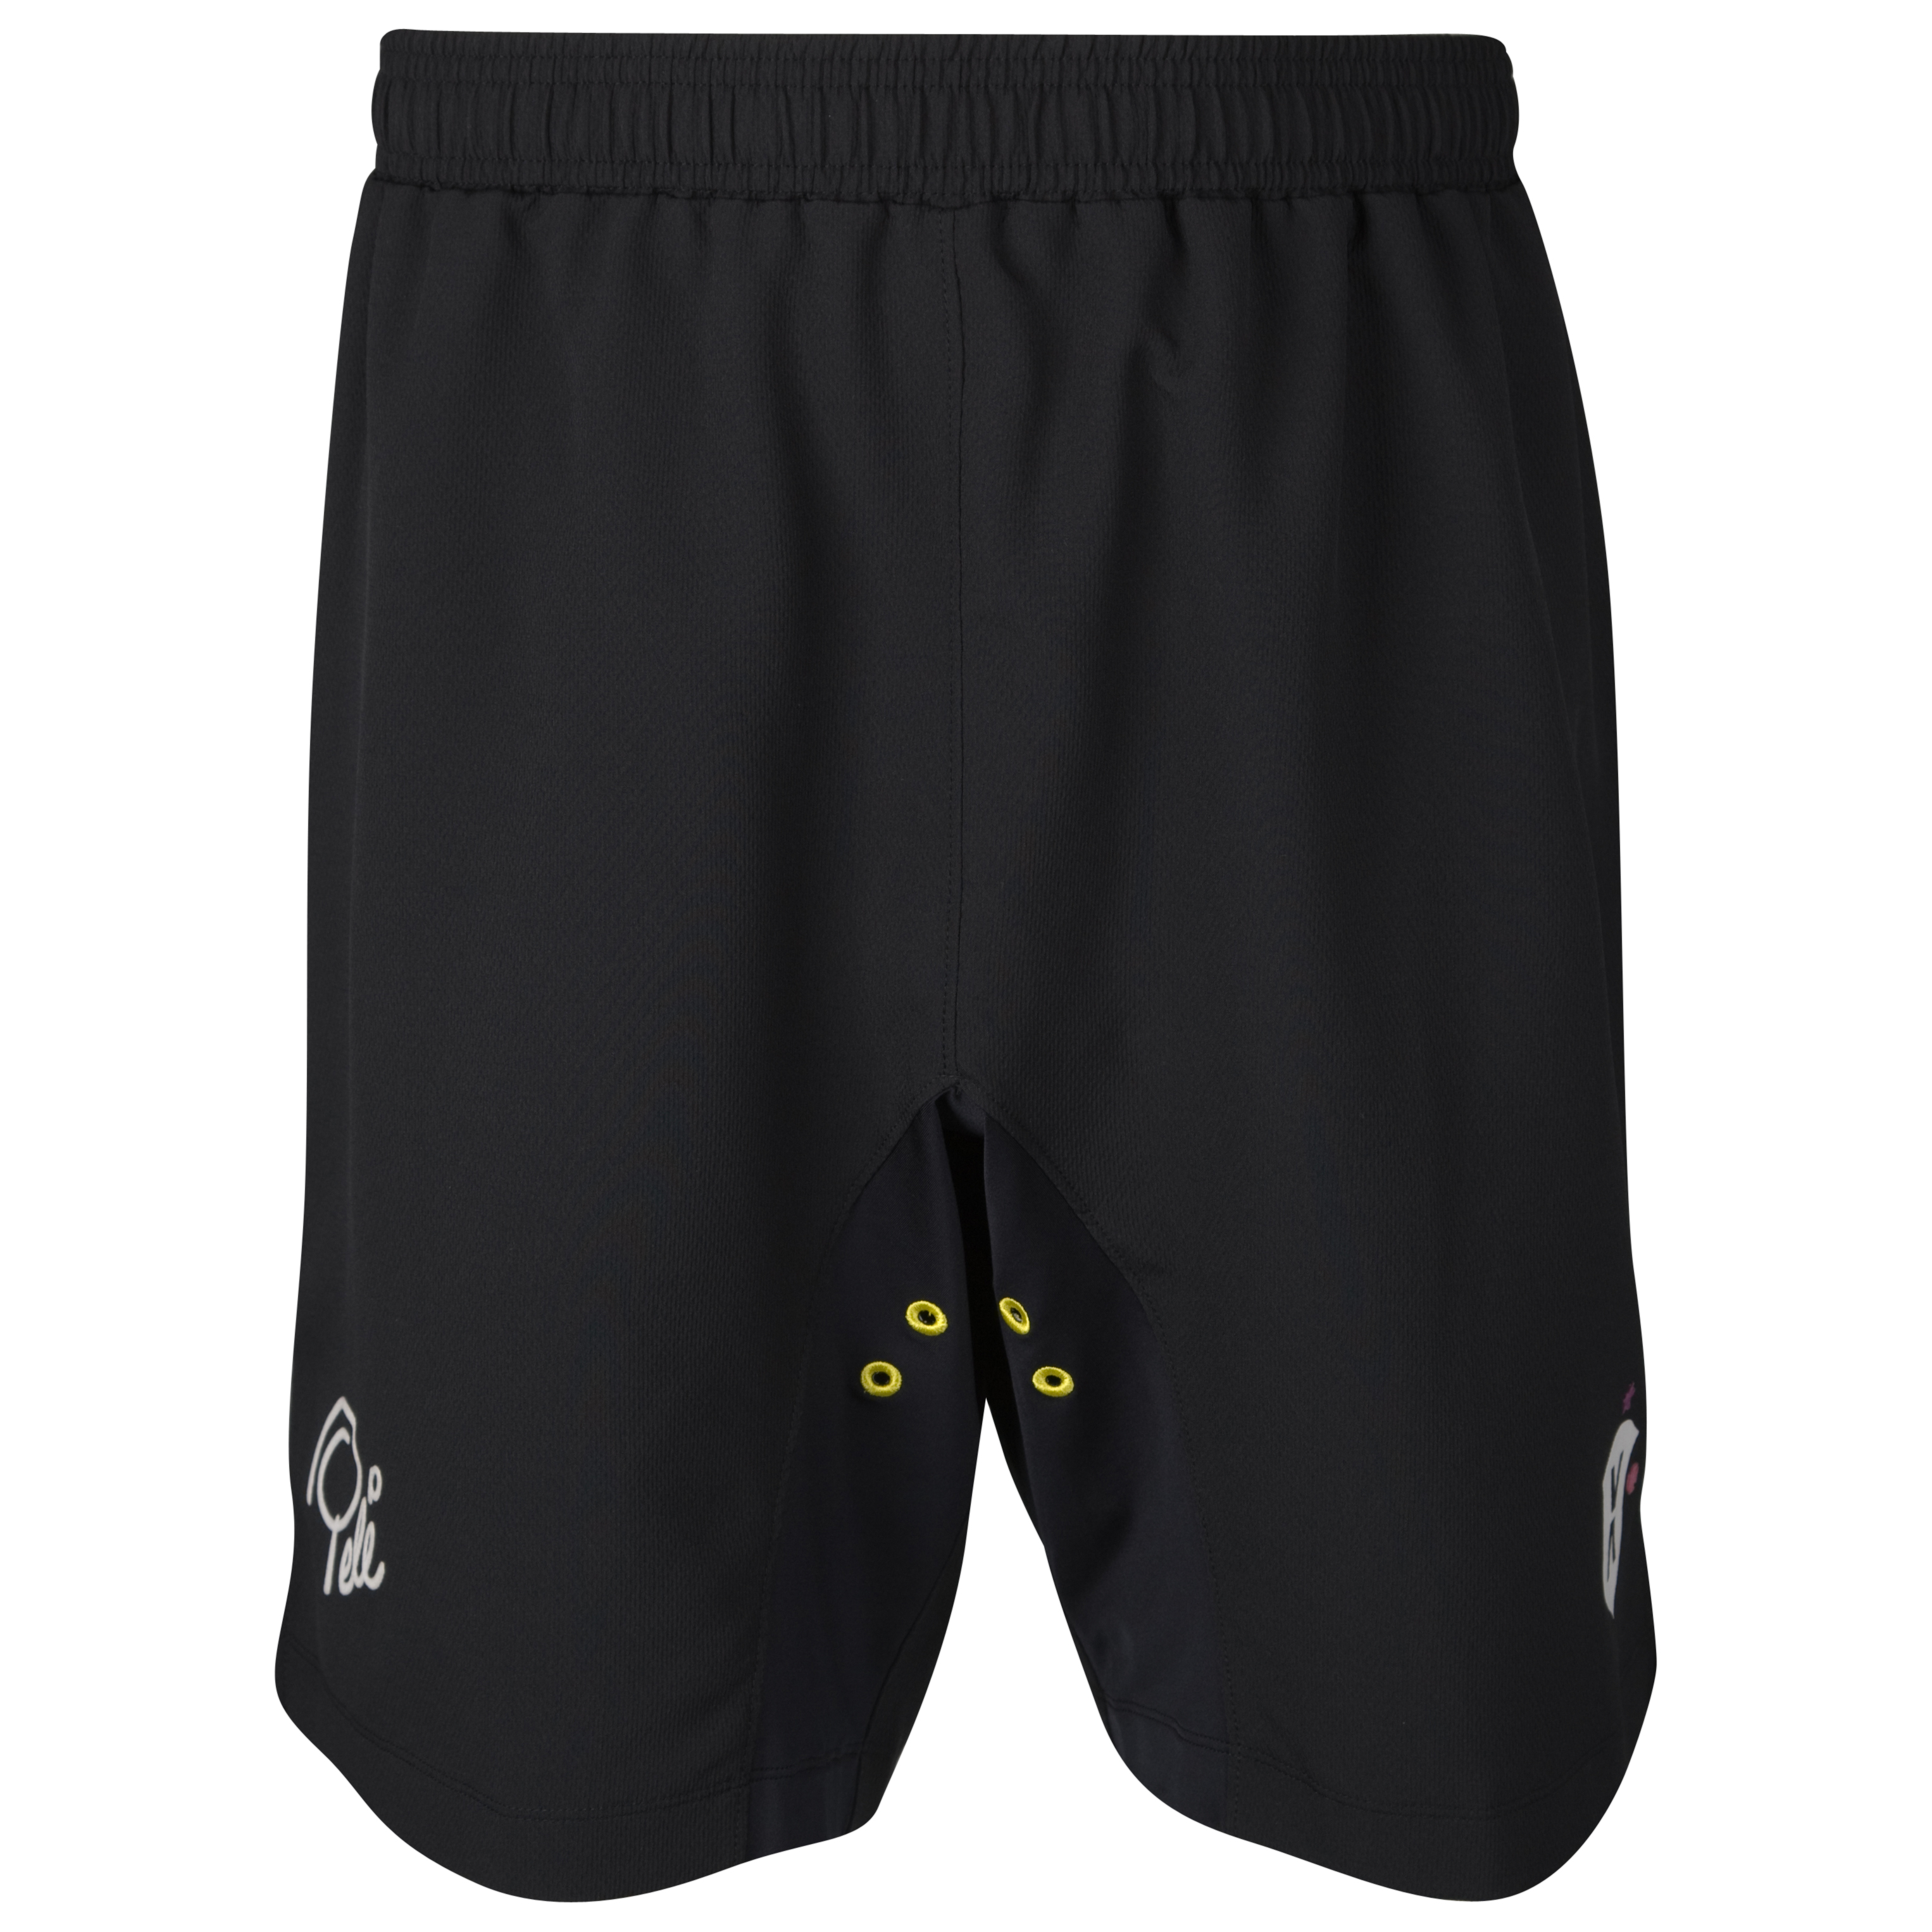 Pele Pel? Sports Solid Shorts - Black Anthracite